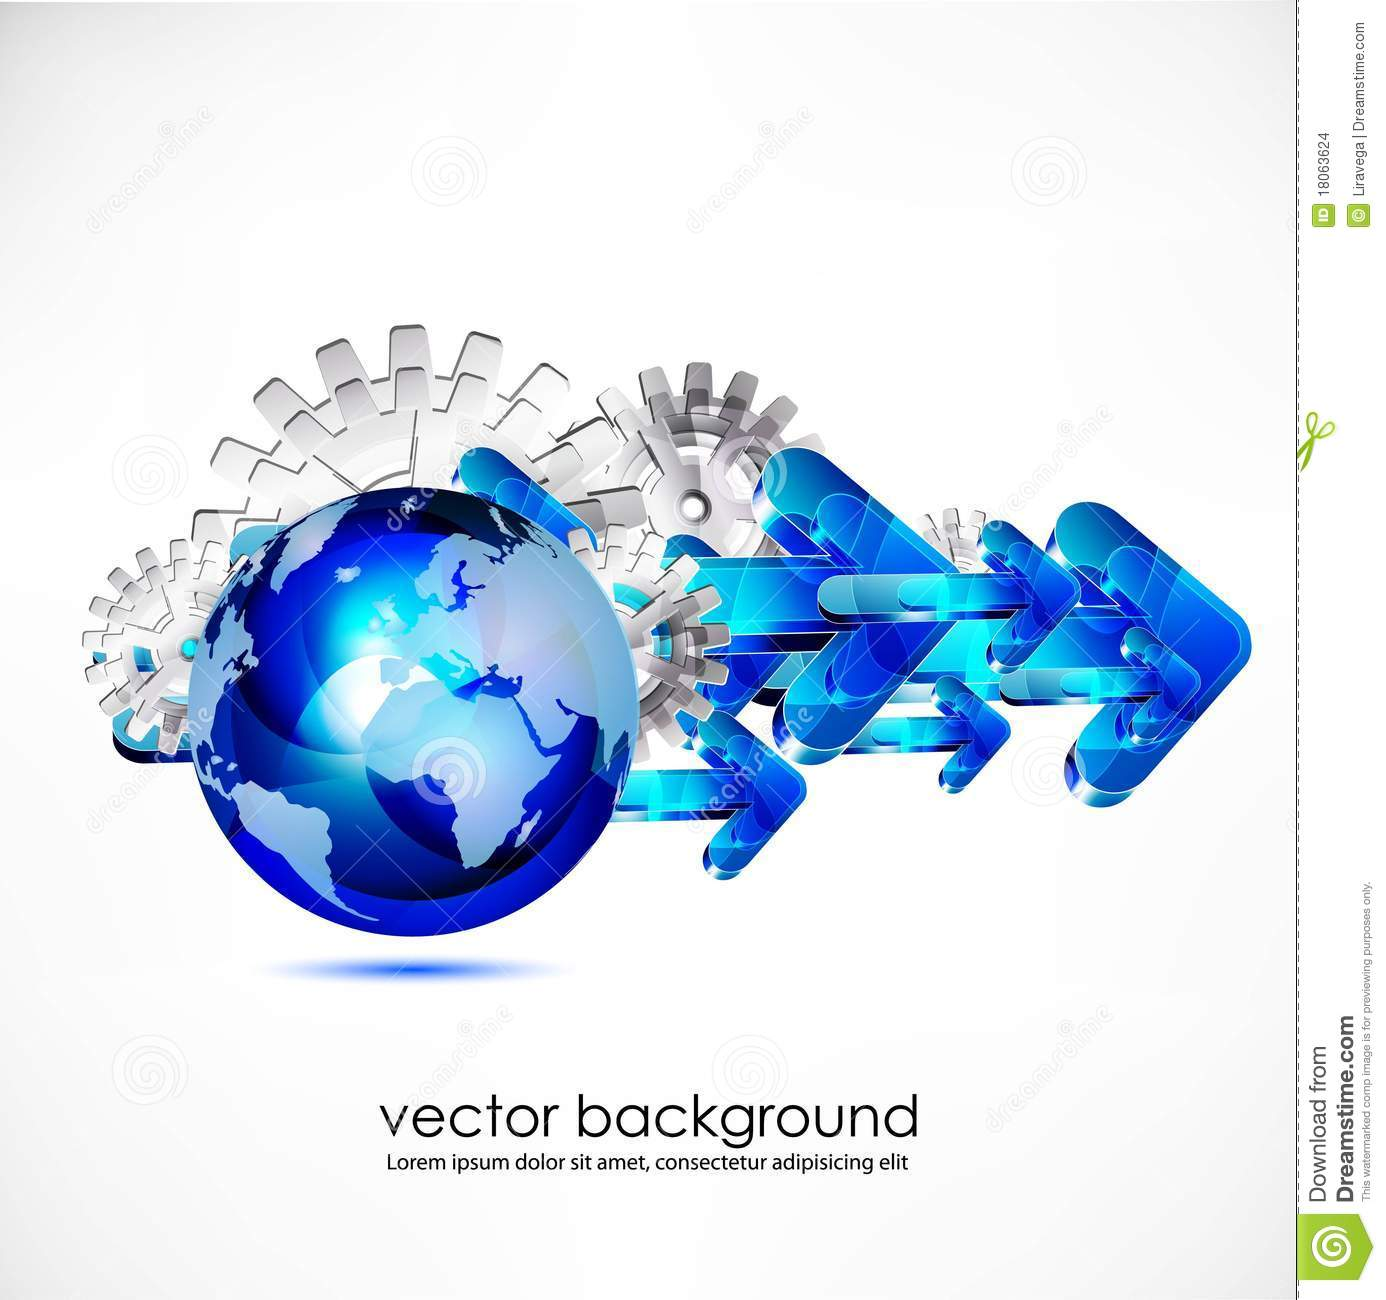 Business Concept Design Stock Images - Image: 18063624